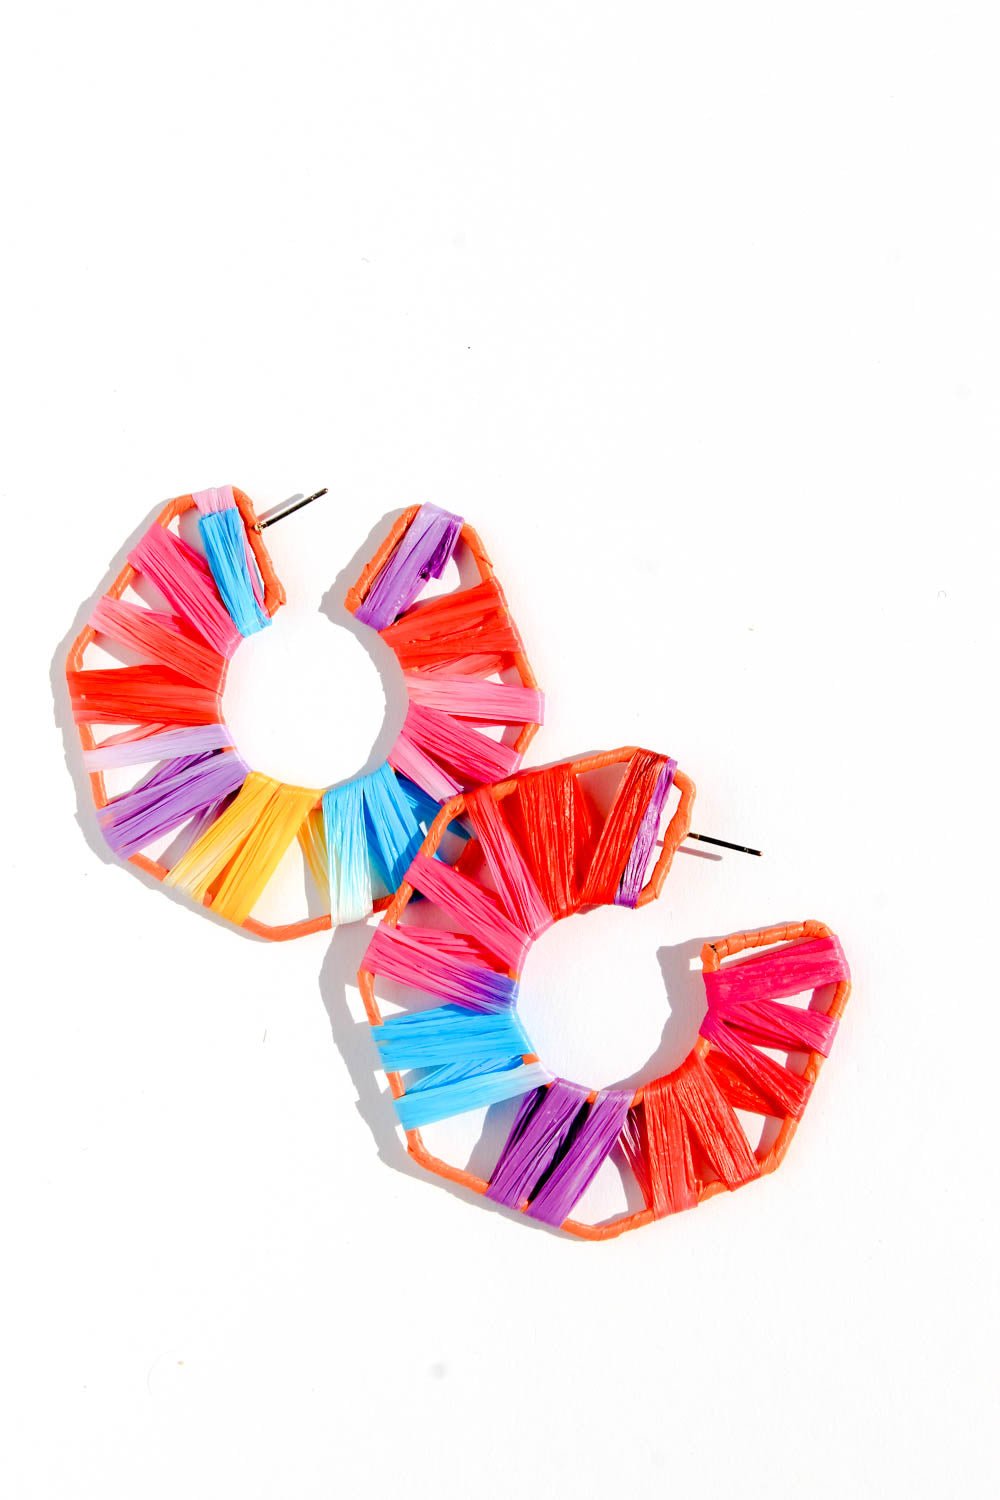 SOPHIA RAINBOW HOOPS